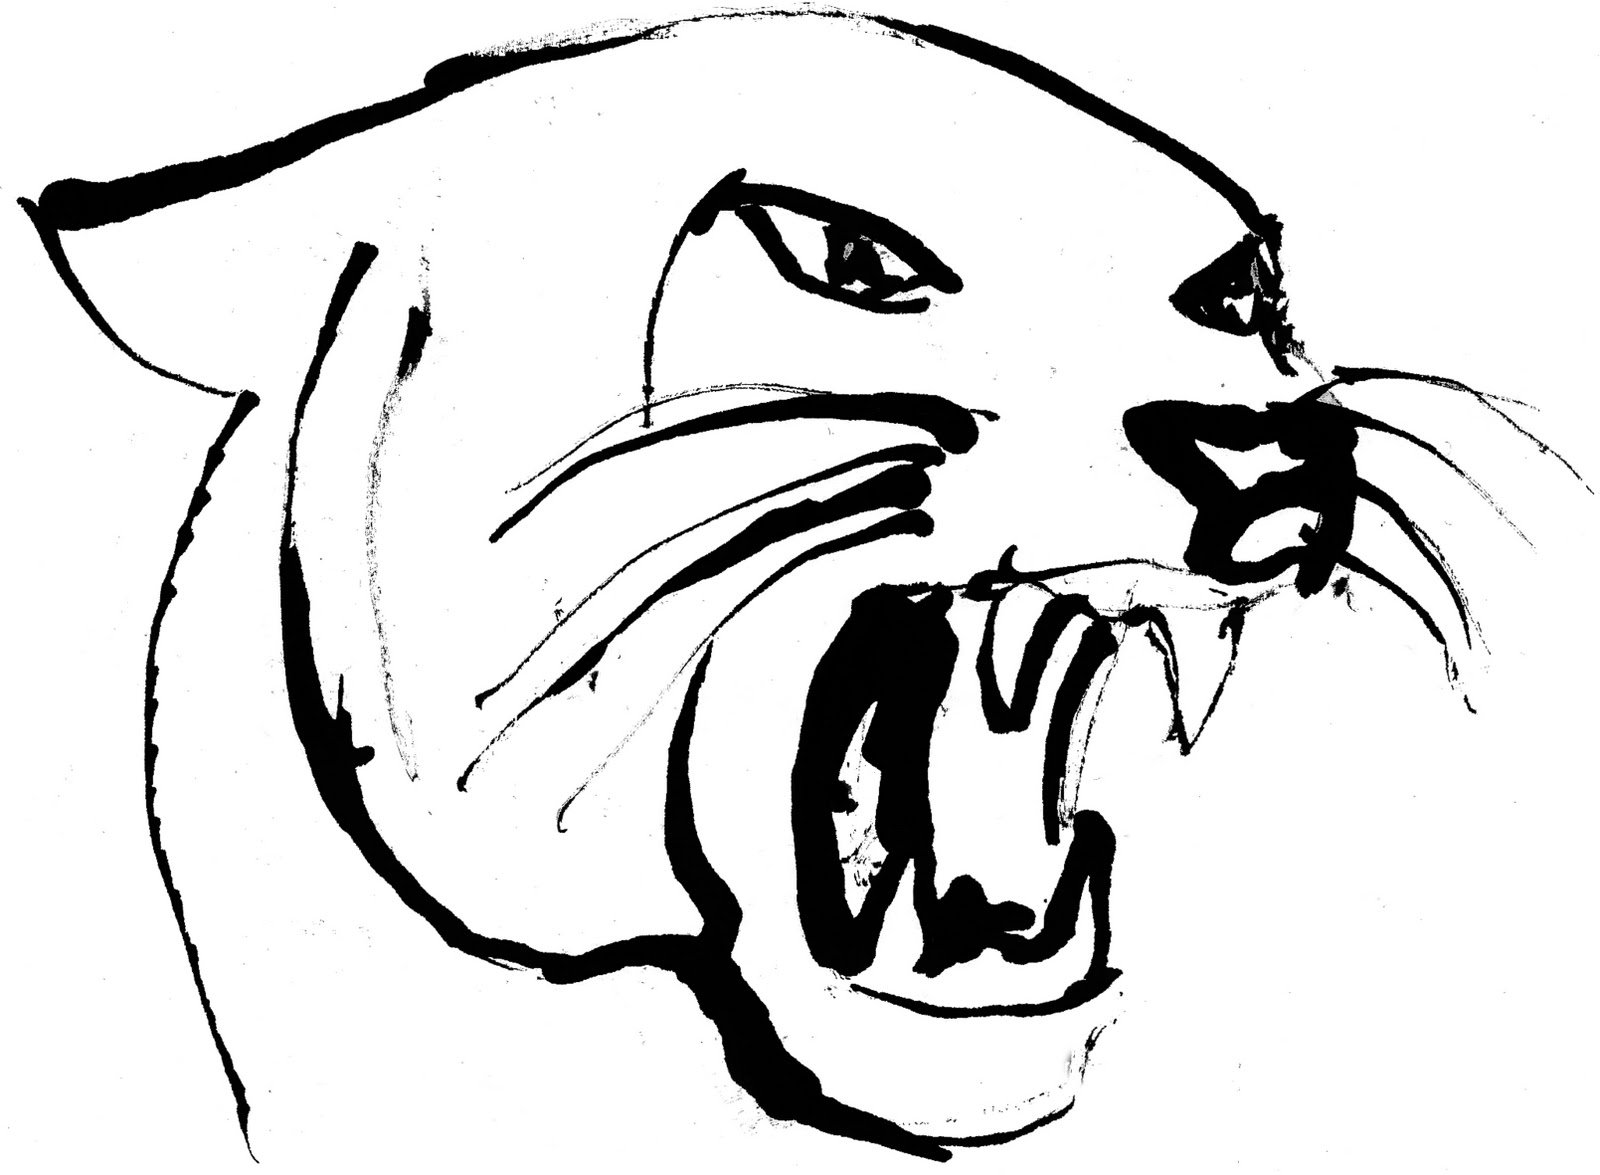 panther drawing outline - photo #10